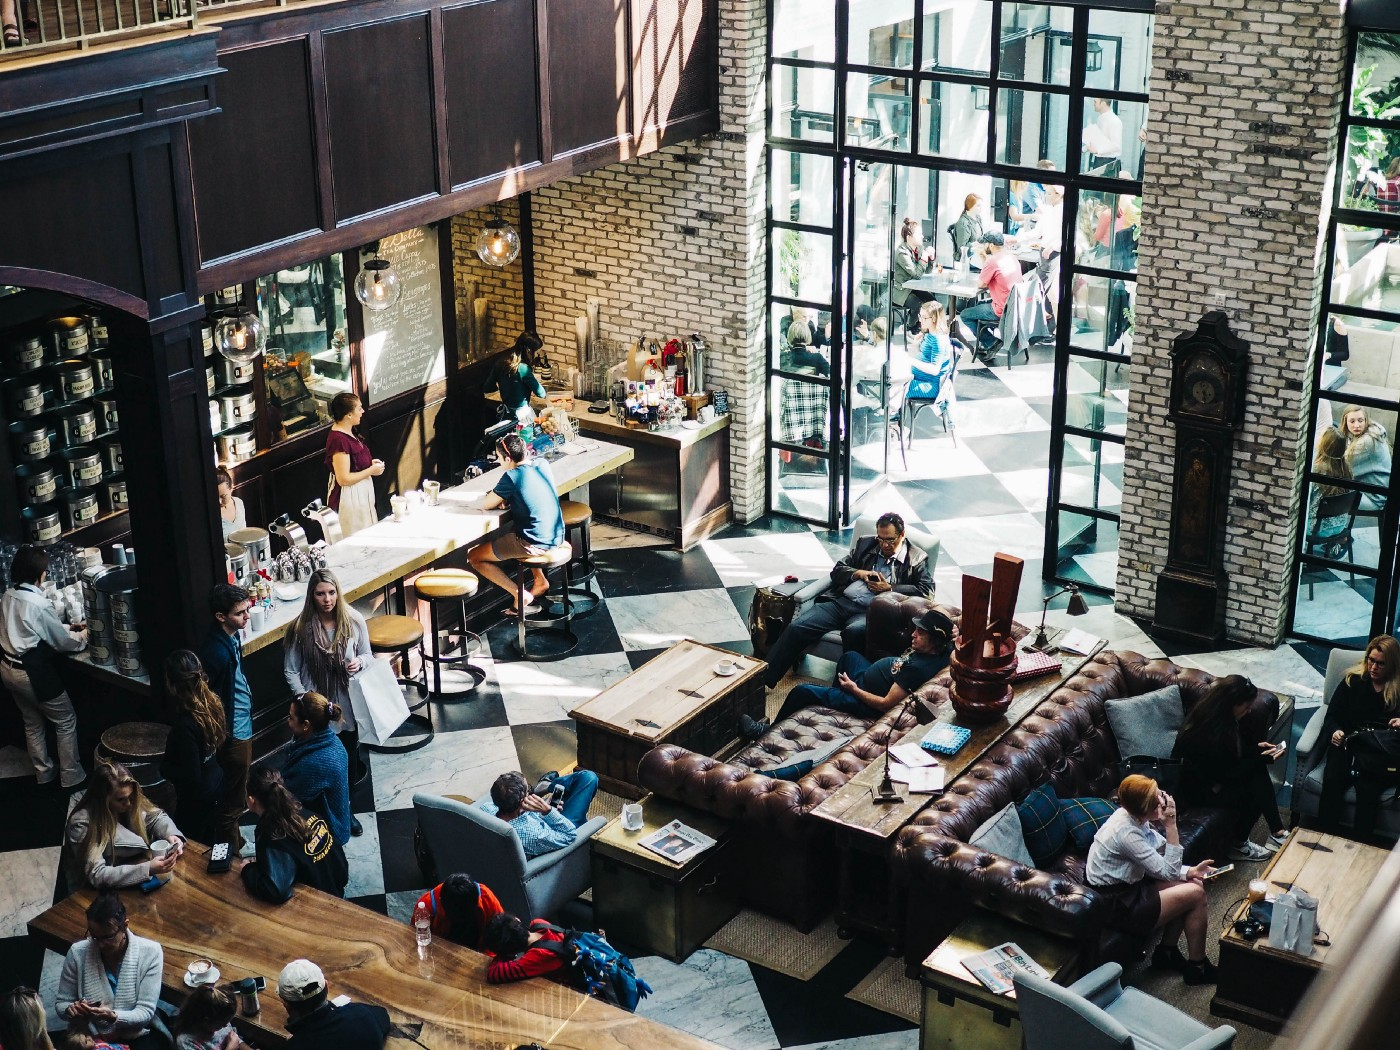 The coffee shop space with a noisy background makes you more effective.